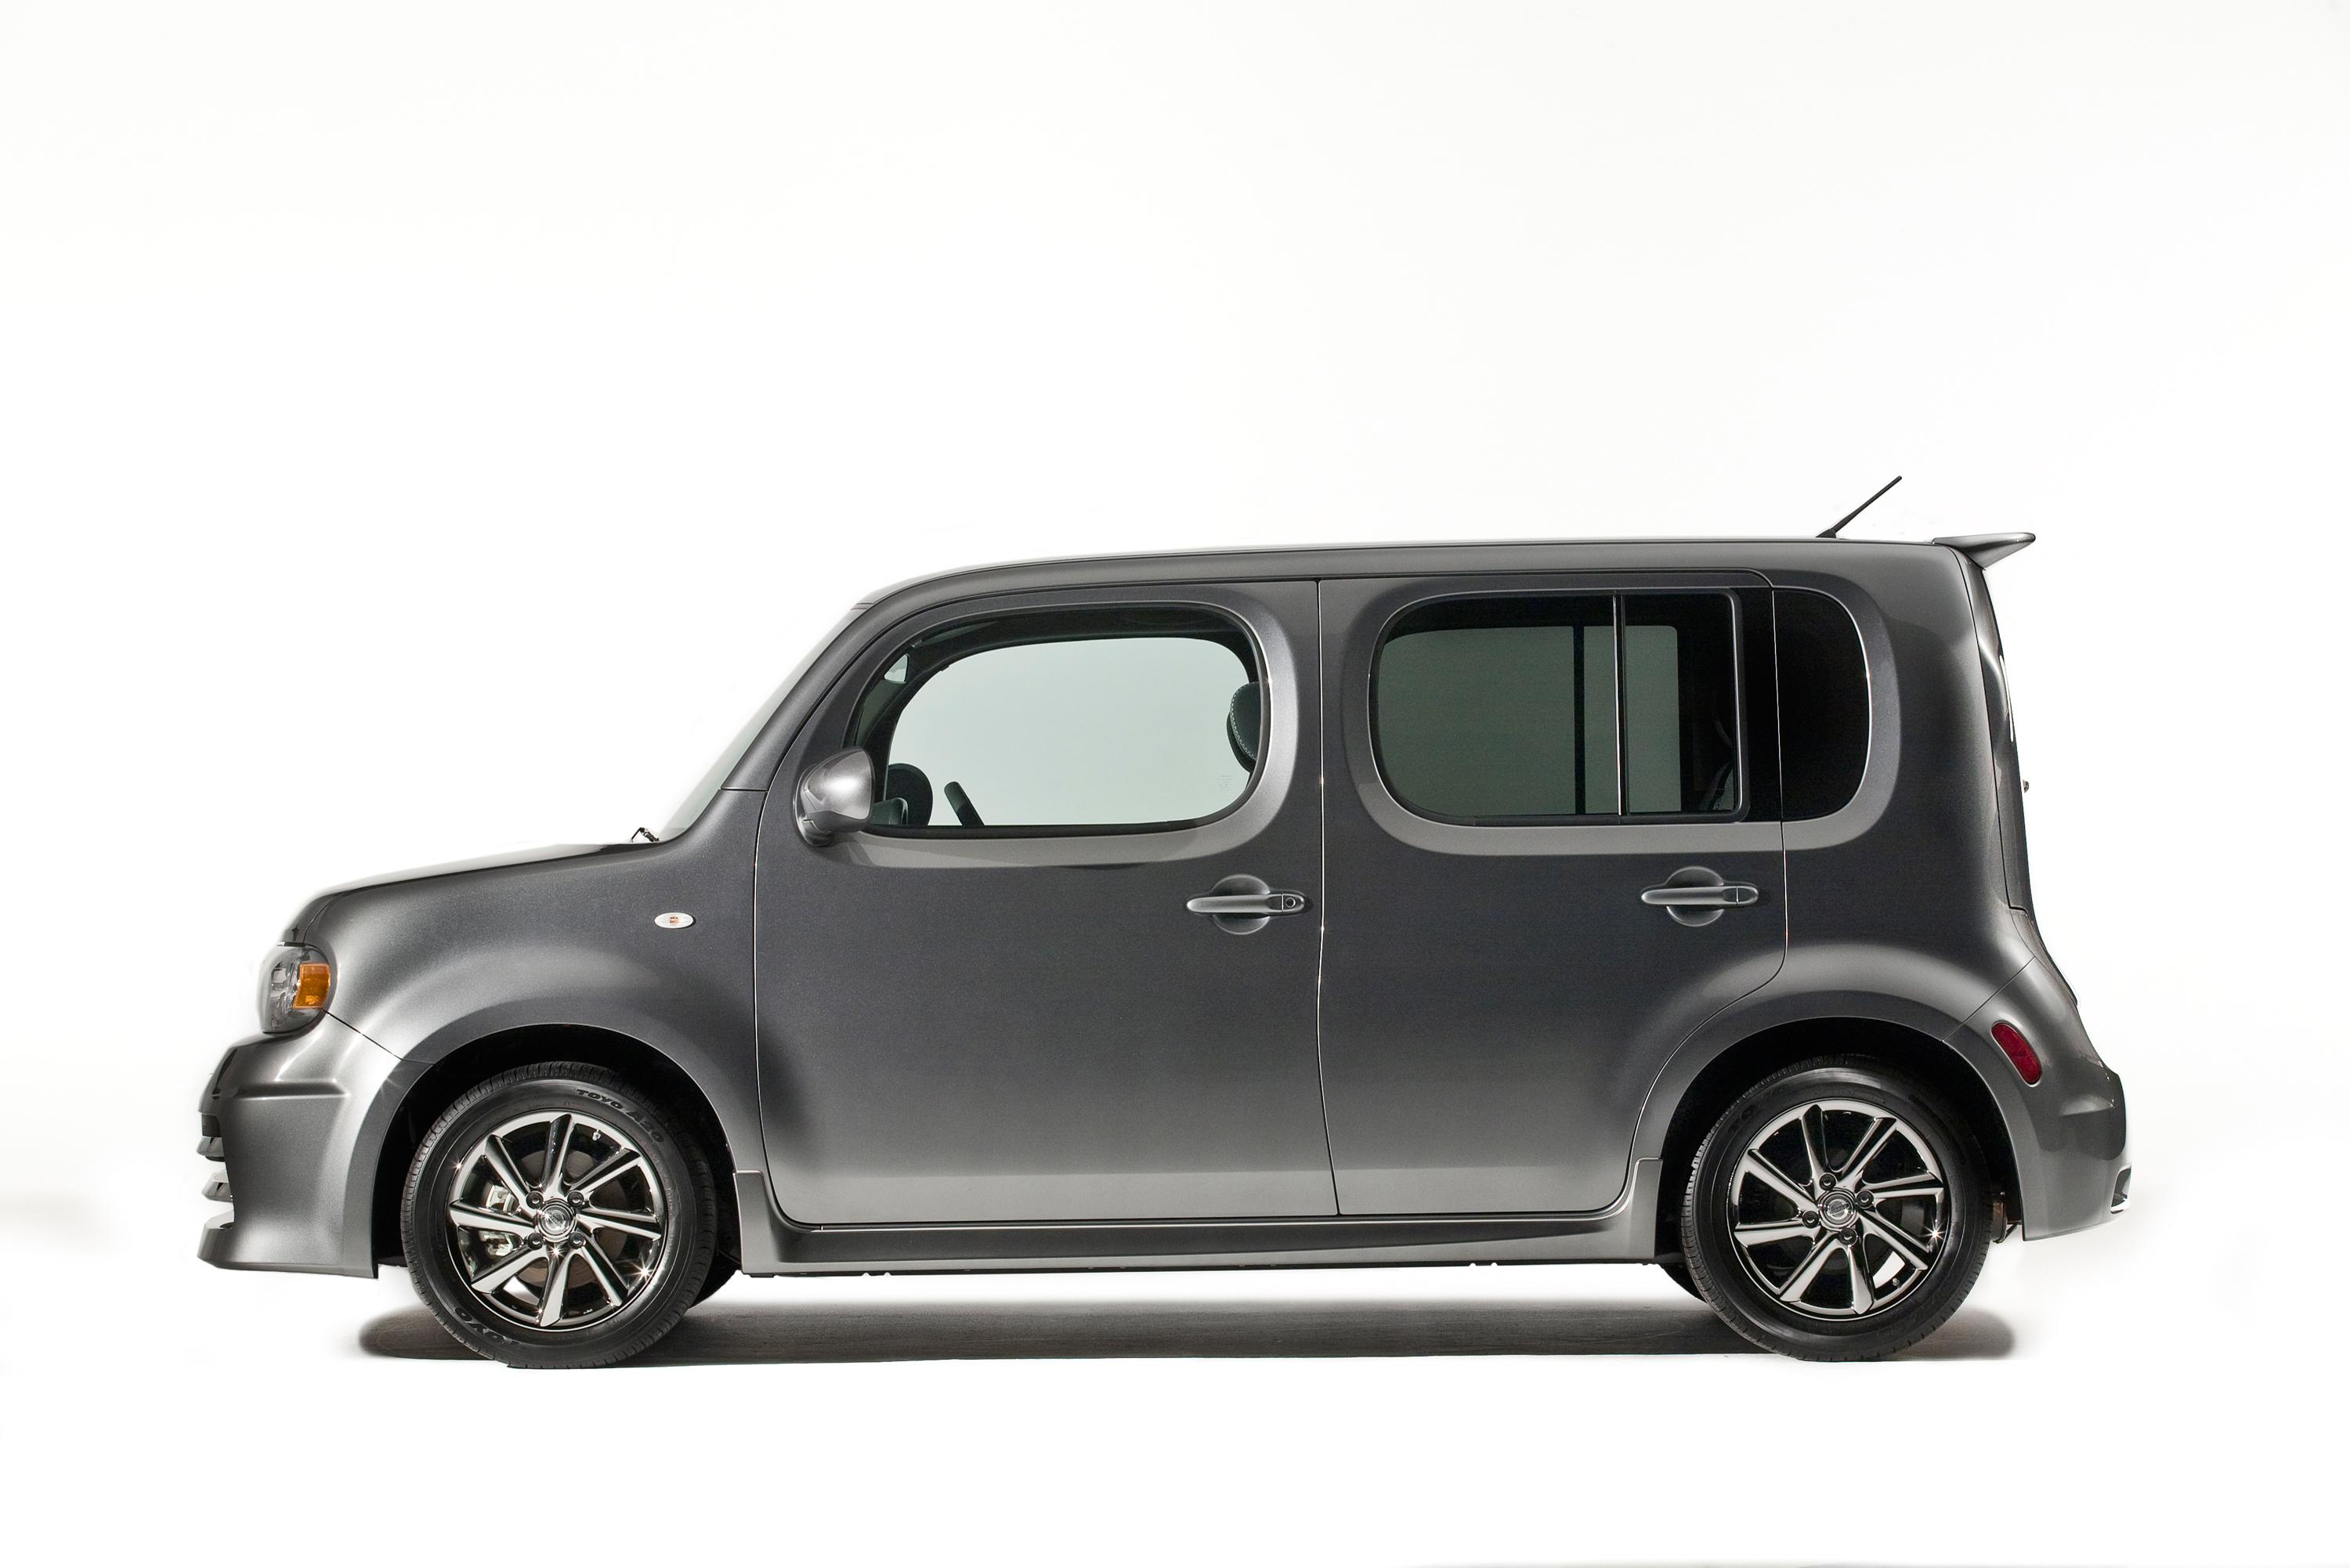 2009 Nissan Cube Krom Picture 12867